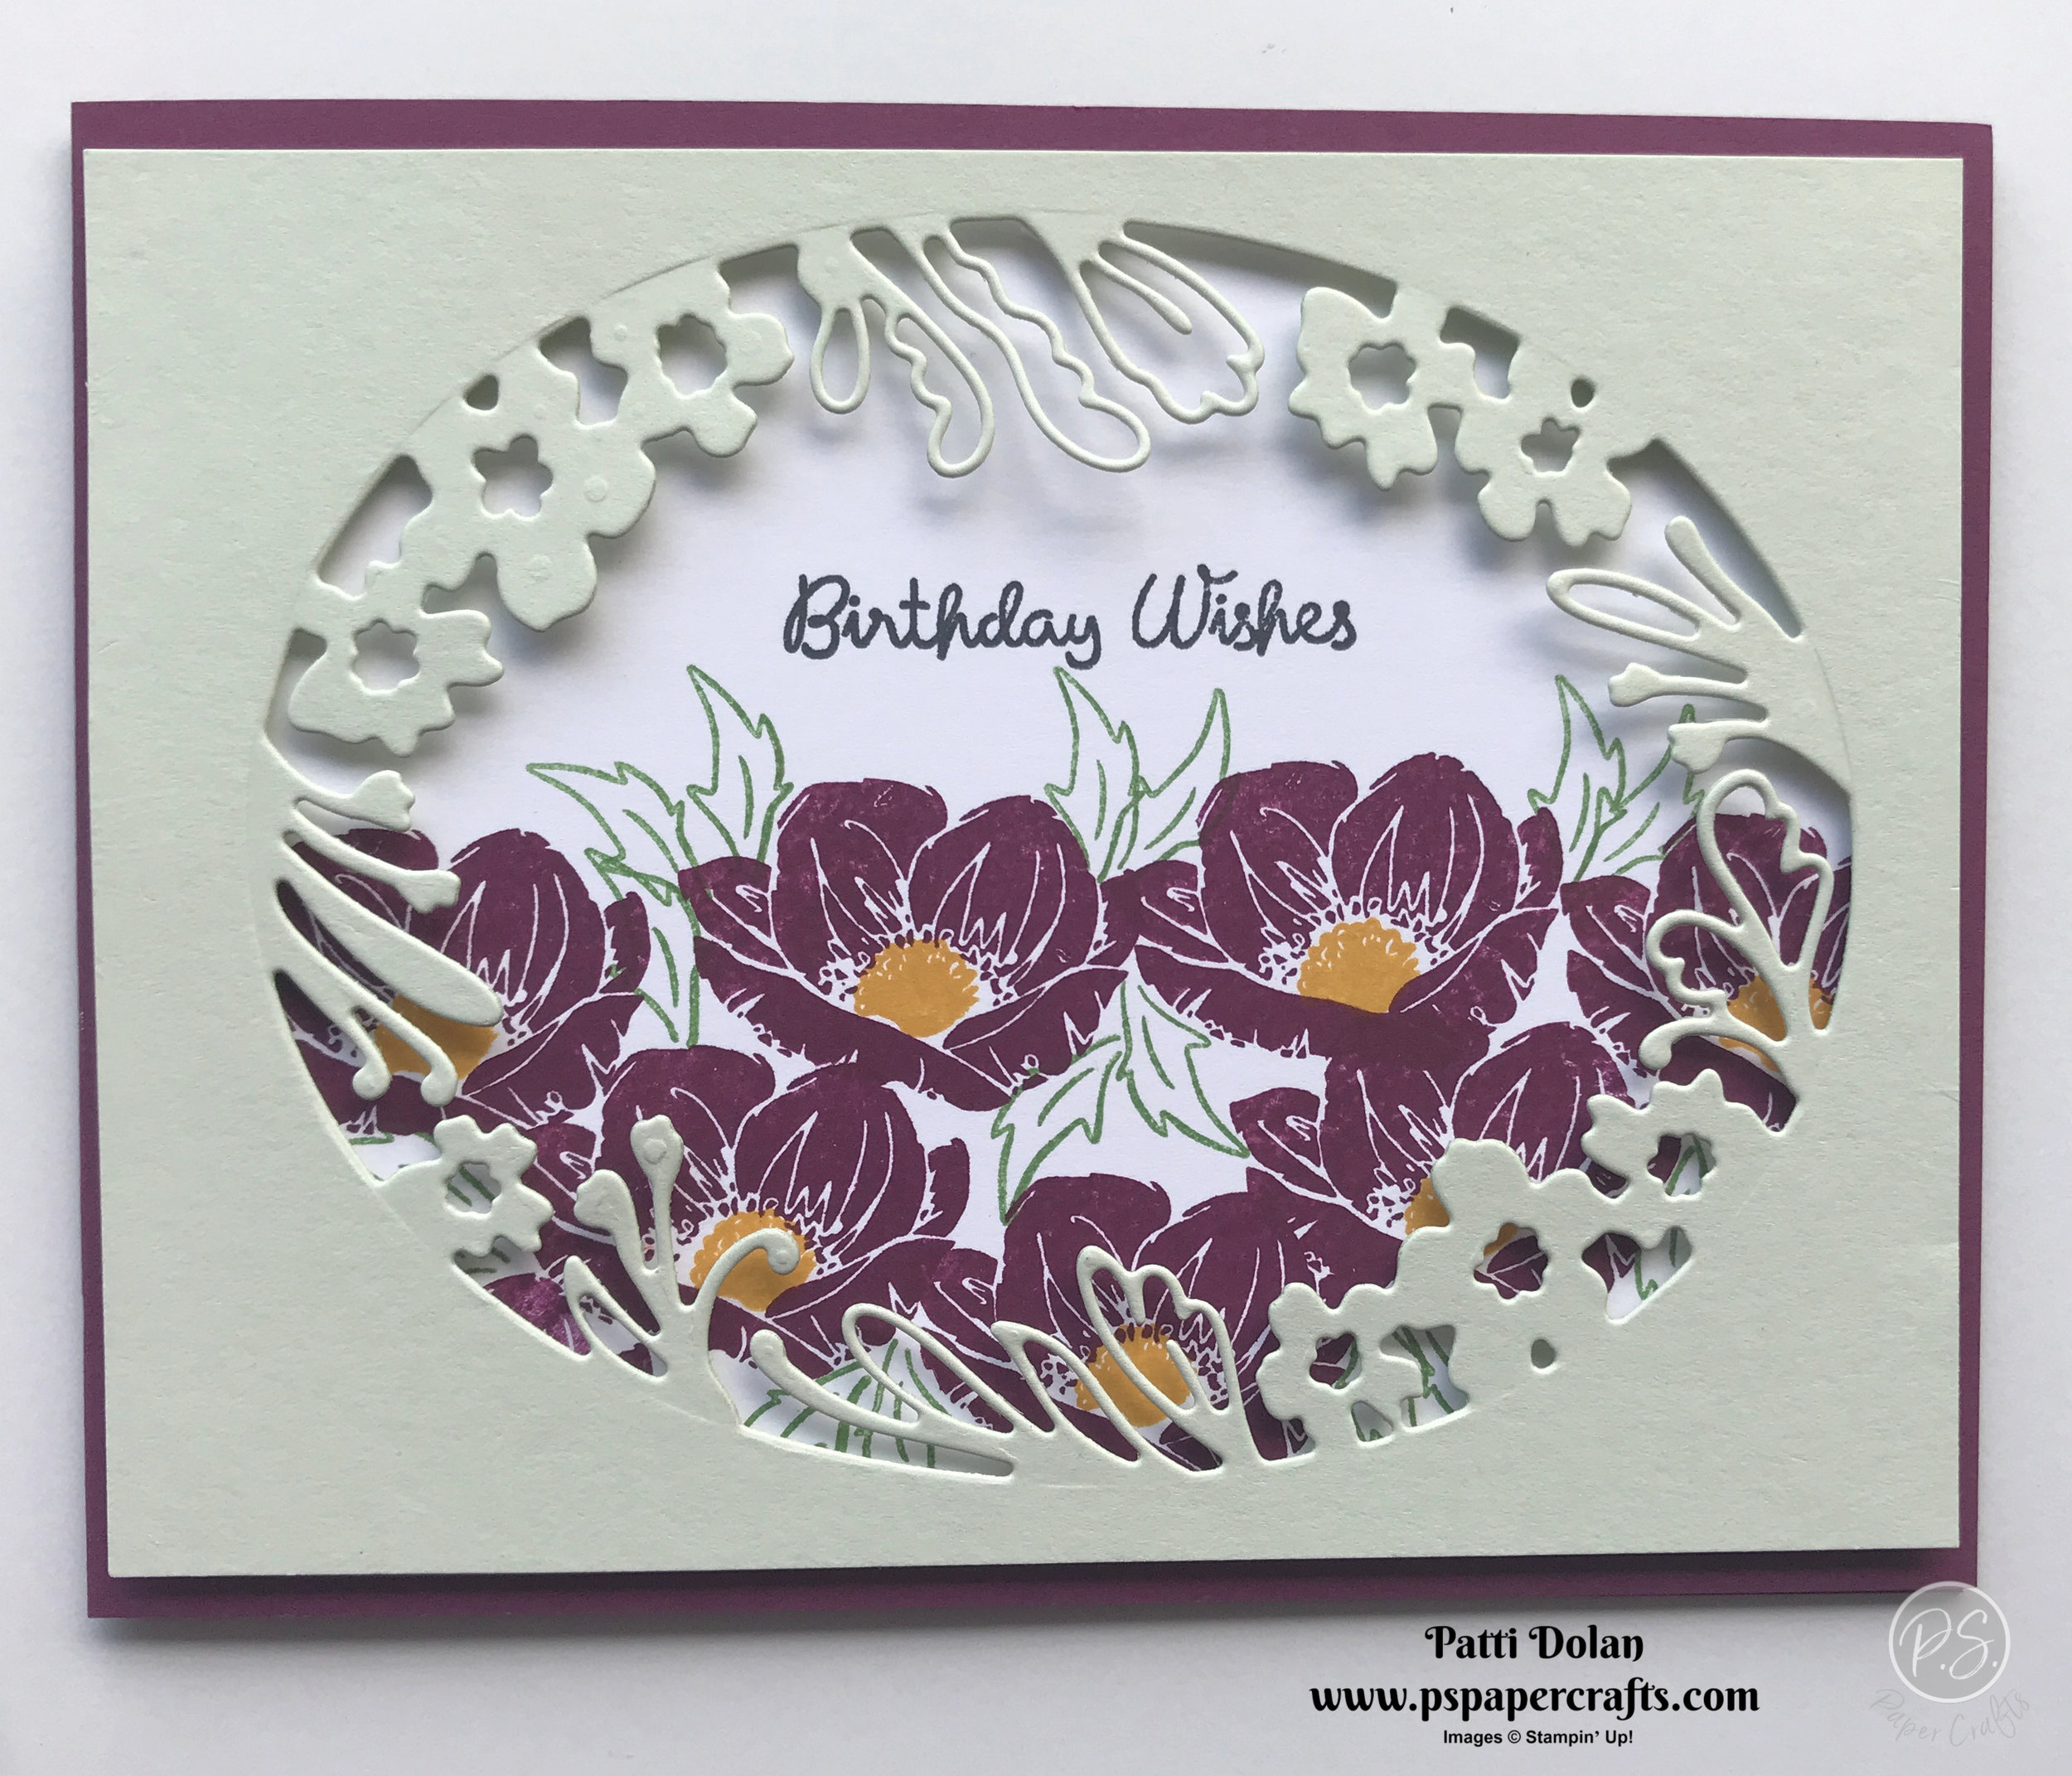 Floral Essence Birthday Wishes card.jpg